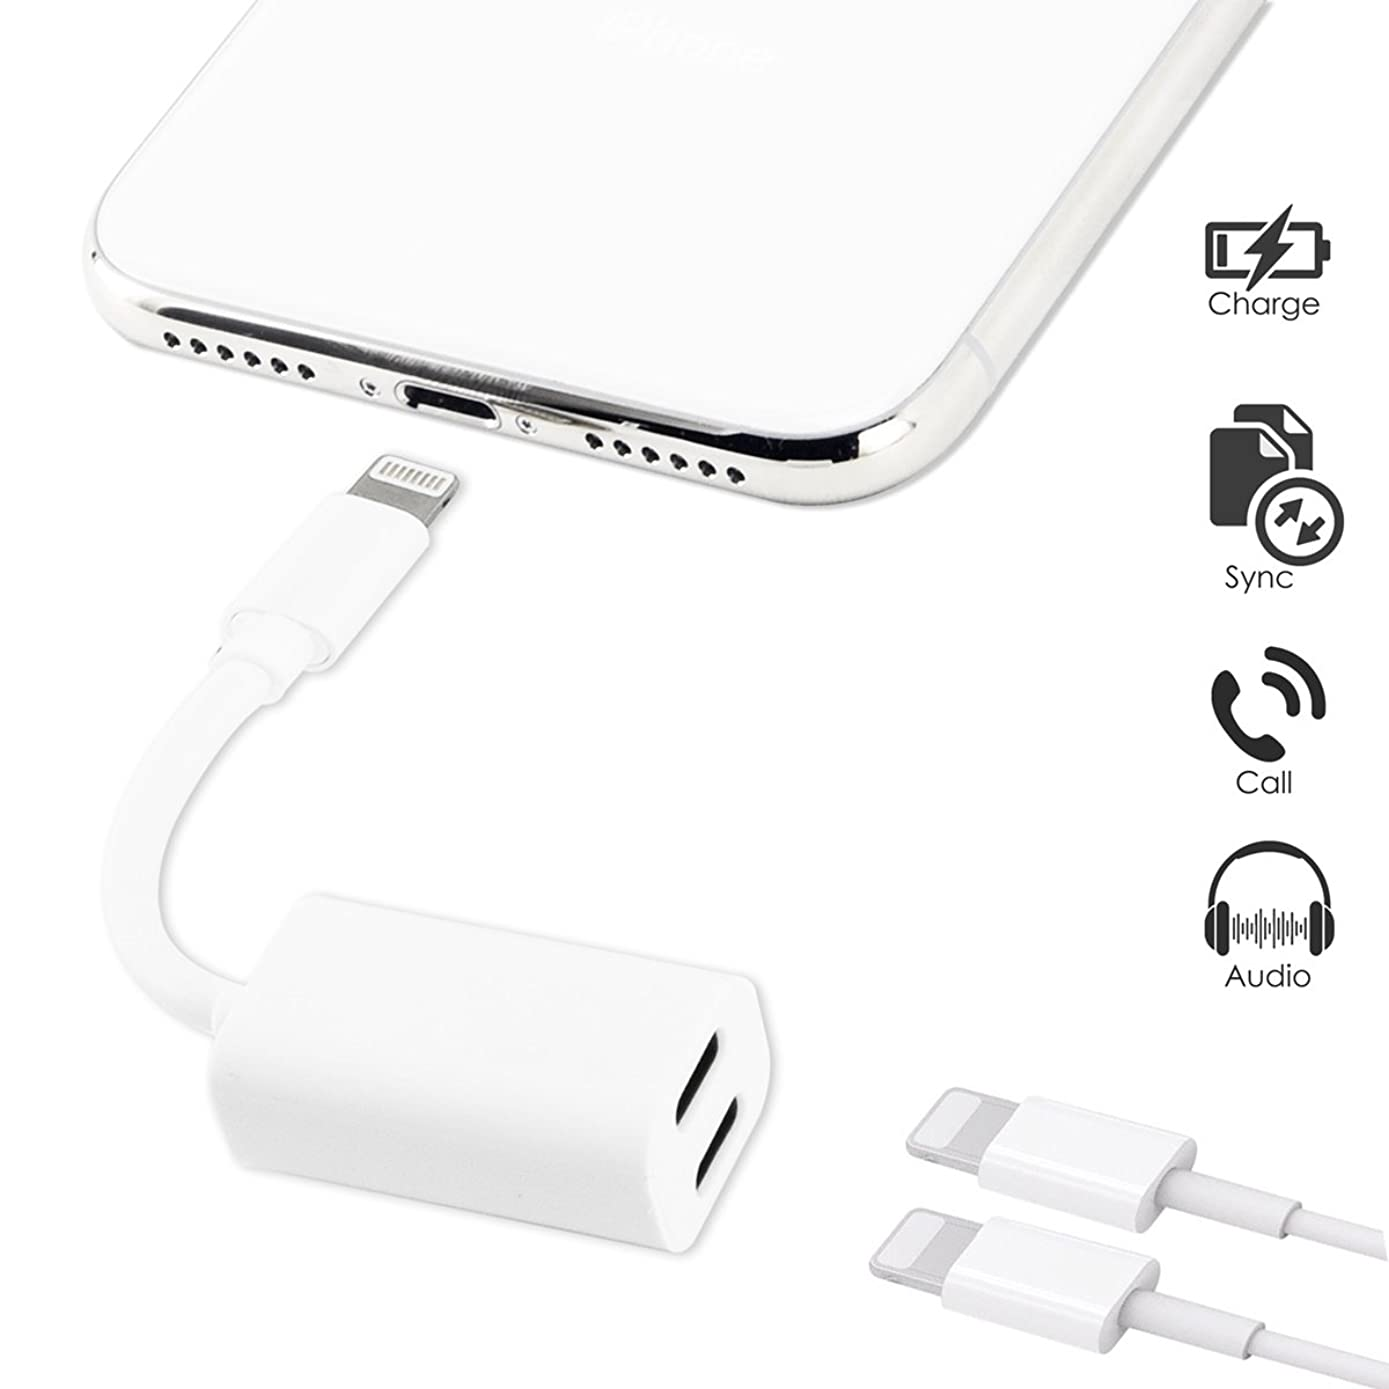 TOP CASE - Dual Lightning Headphone Audio & Charge Adapter Compatible with iPhone X/8/8 Plus/7/7 Plus and iPad Pro,Air Adapter & Splitter, iOS 10 or Later (White)